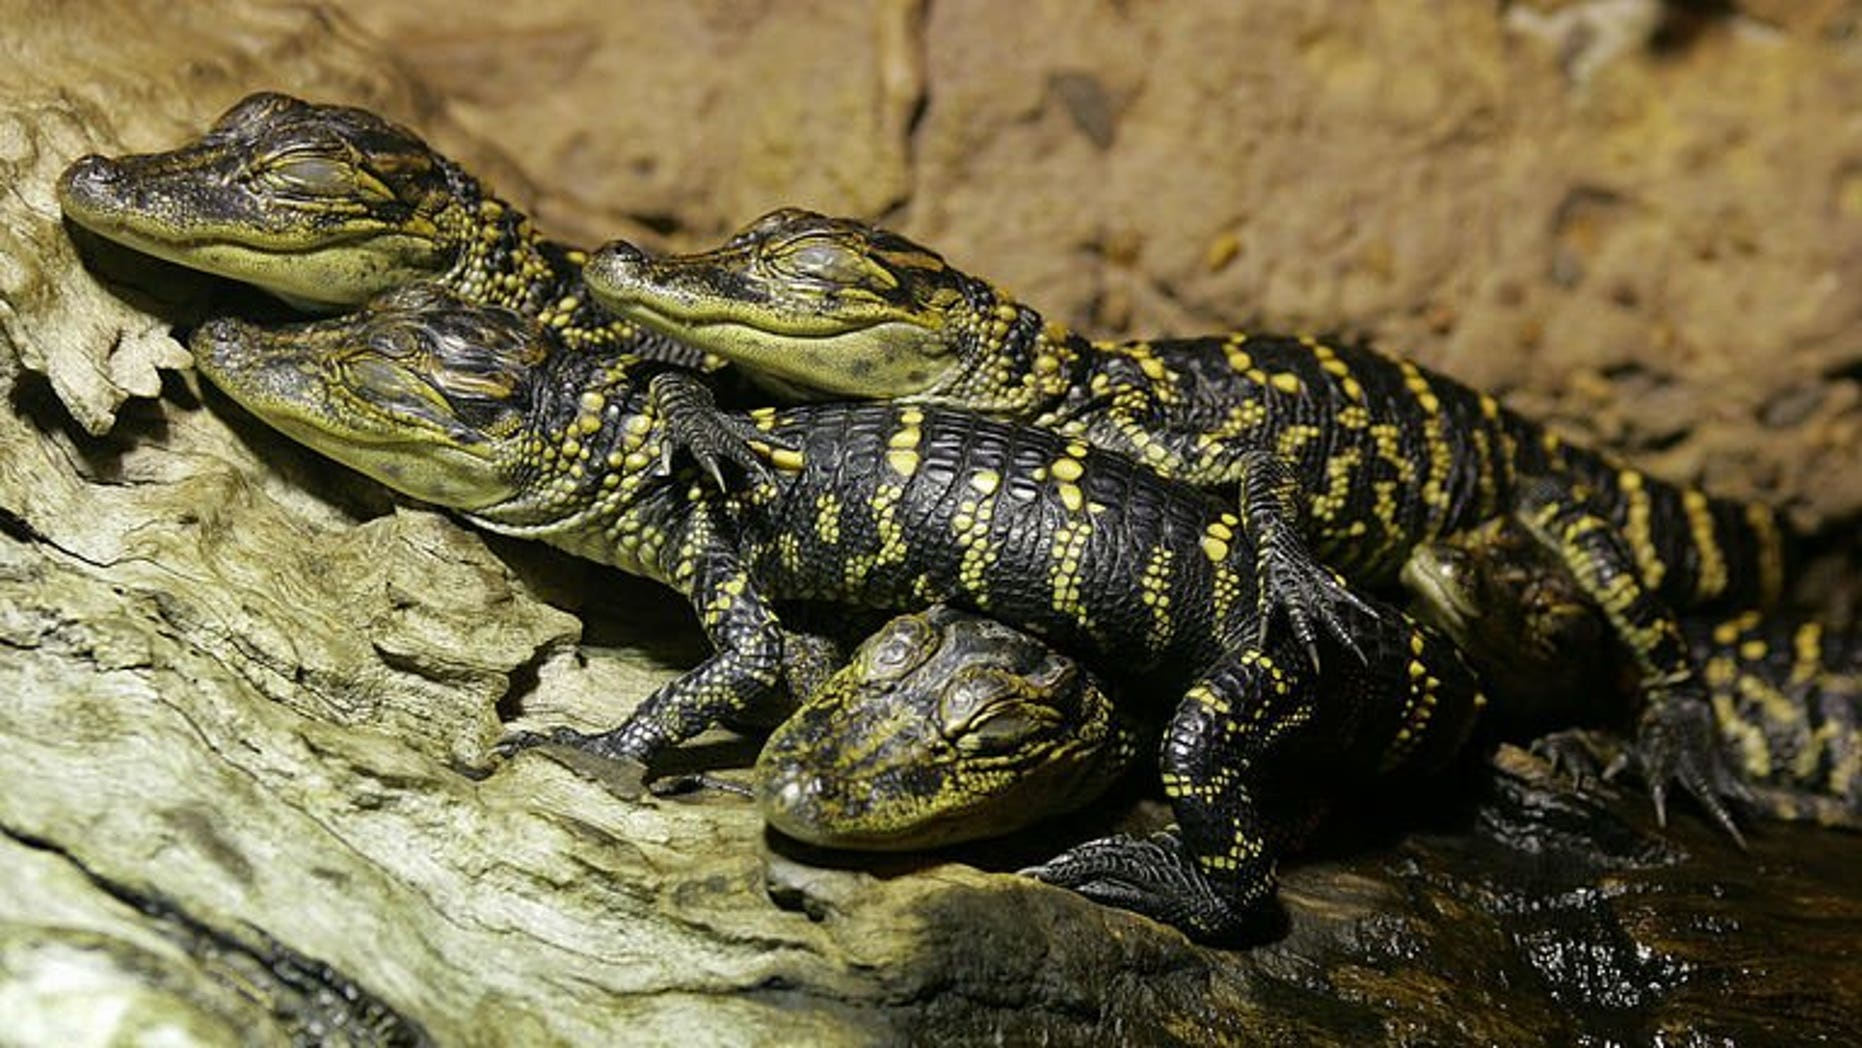 Juvenile American alligators (Alligator mississippiensis) are seen at the Australian Reptile Park at Gosford, near Sydney, on October 8, 2004. Thieves stole a horde of exotic reptiles from the park, including a baby alligator, leaving their keepers fearing they could be destined for the black market.